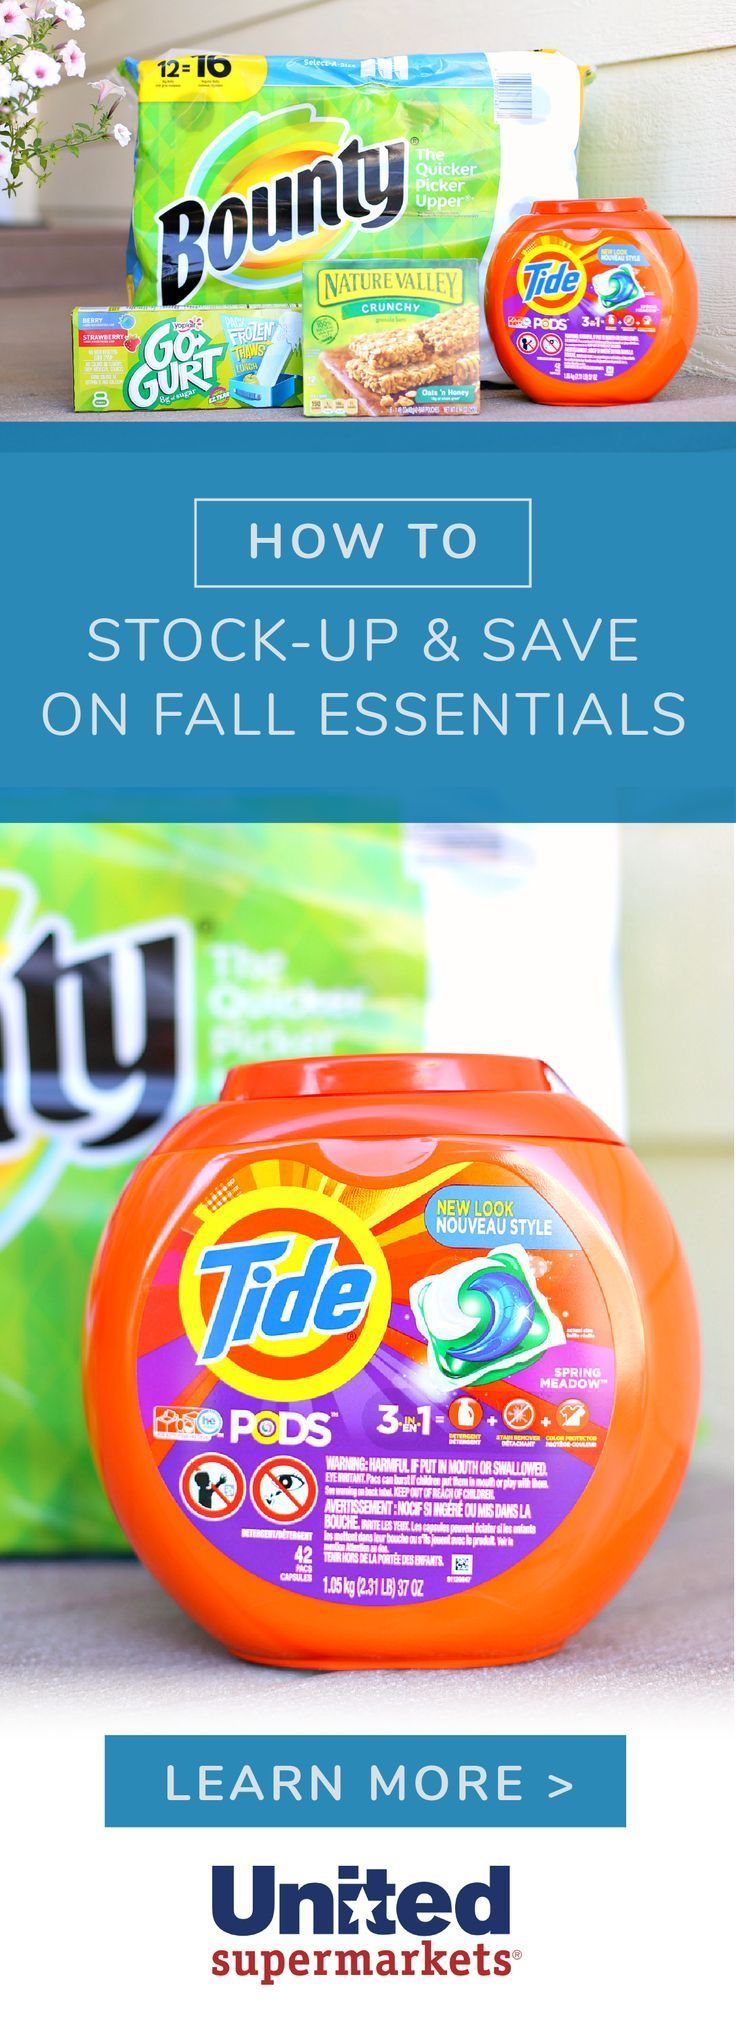 Save Big on Fall Essentials at the Safeway Stock Up Sale - #essentials #safeway #stock - #new - #essentials